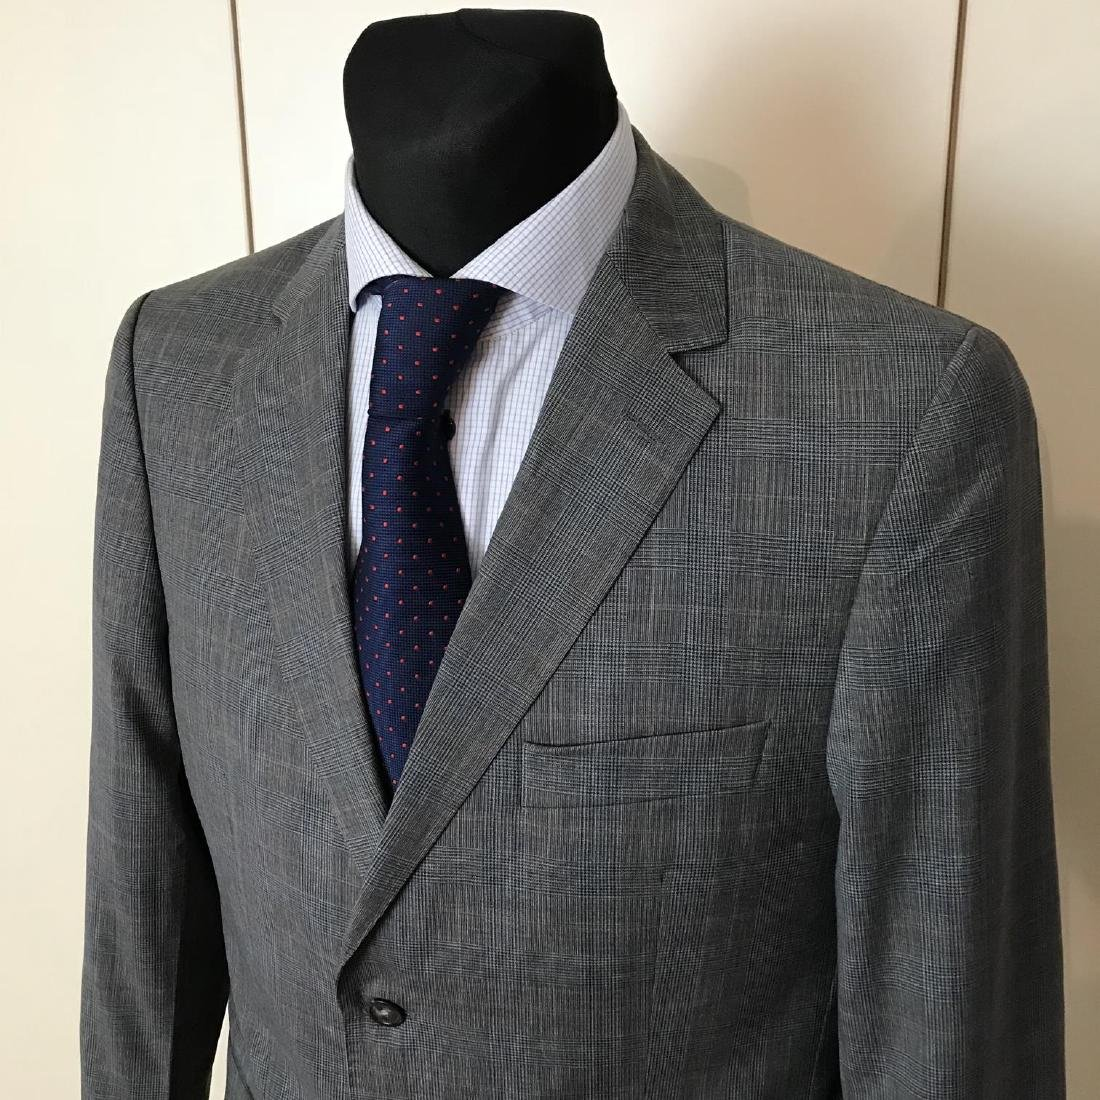 Men's Burberry 100% Virgin Wool Blazer Jacket Size 50 - 2